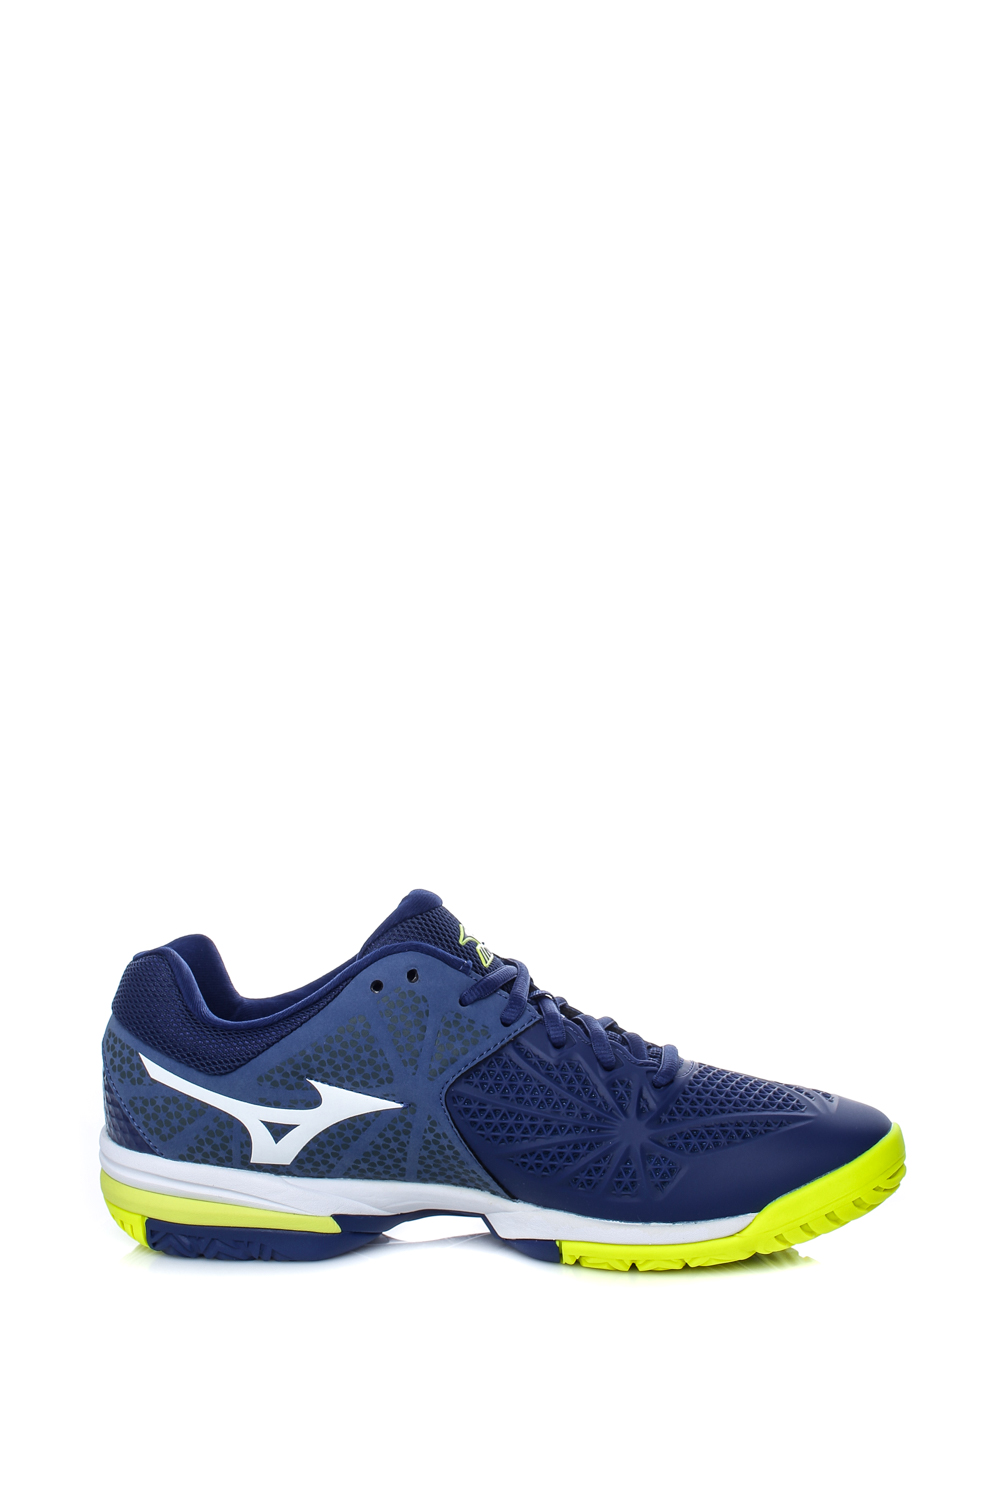 -35% Factory Outlet MIZUNO – Ανδρικά αθλητικά παπούτσια Wave Exceed Tour ... 9b97e7e1799